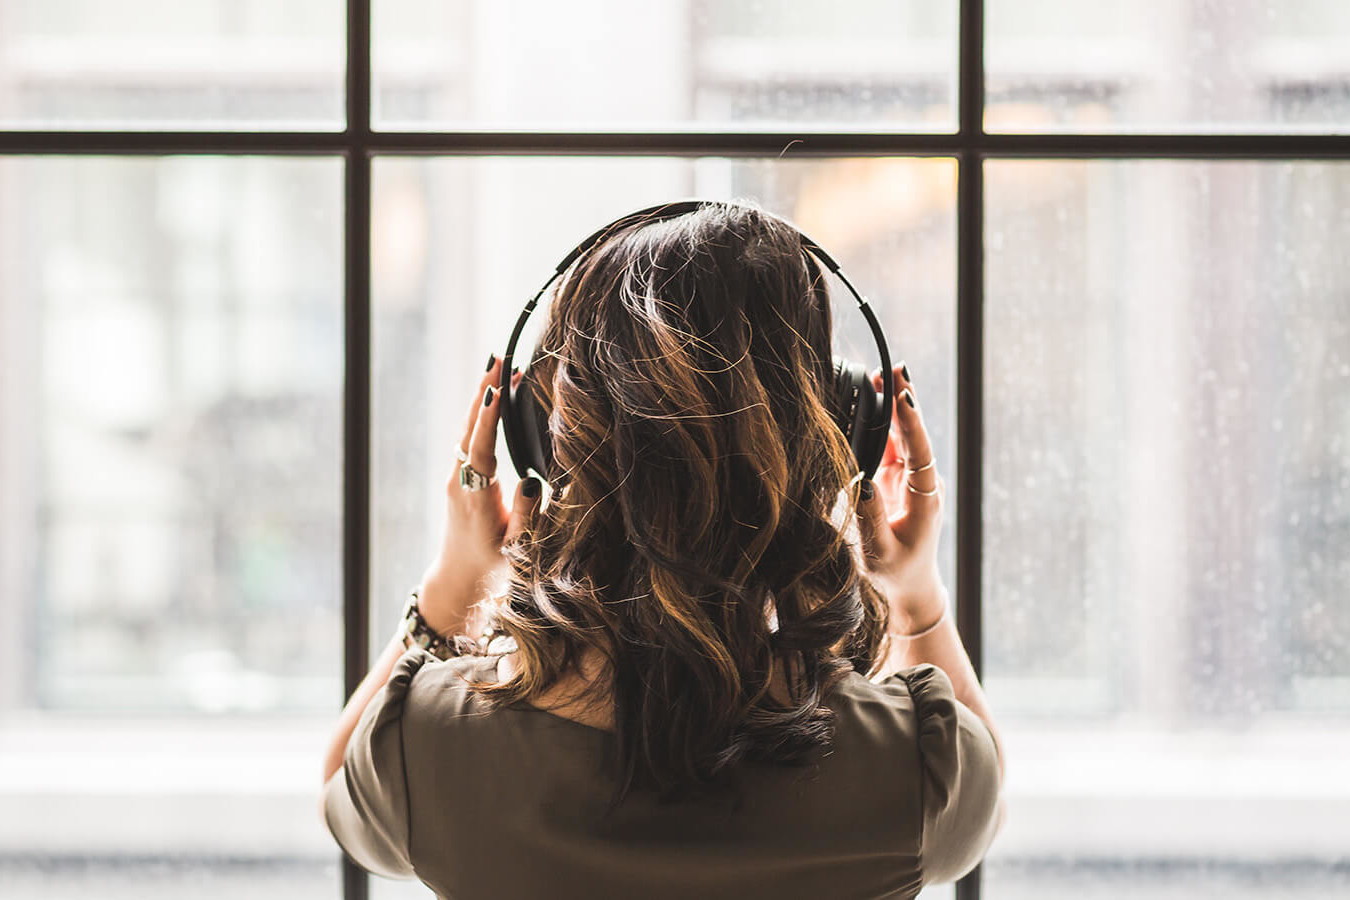 image of young woman wearing headphones, listening, looking out the window, womens audio mission